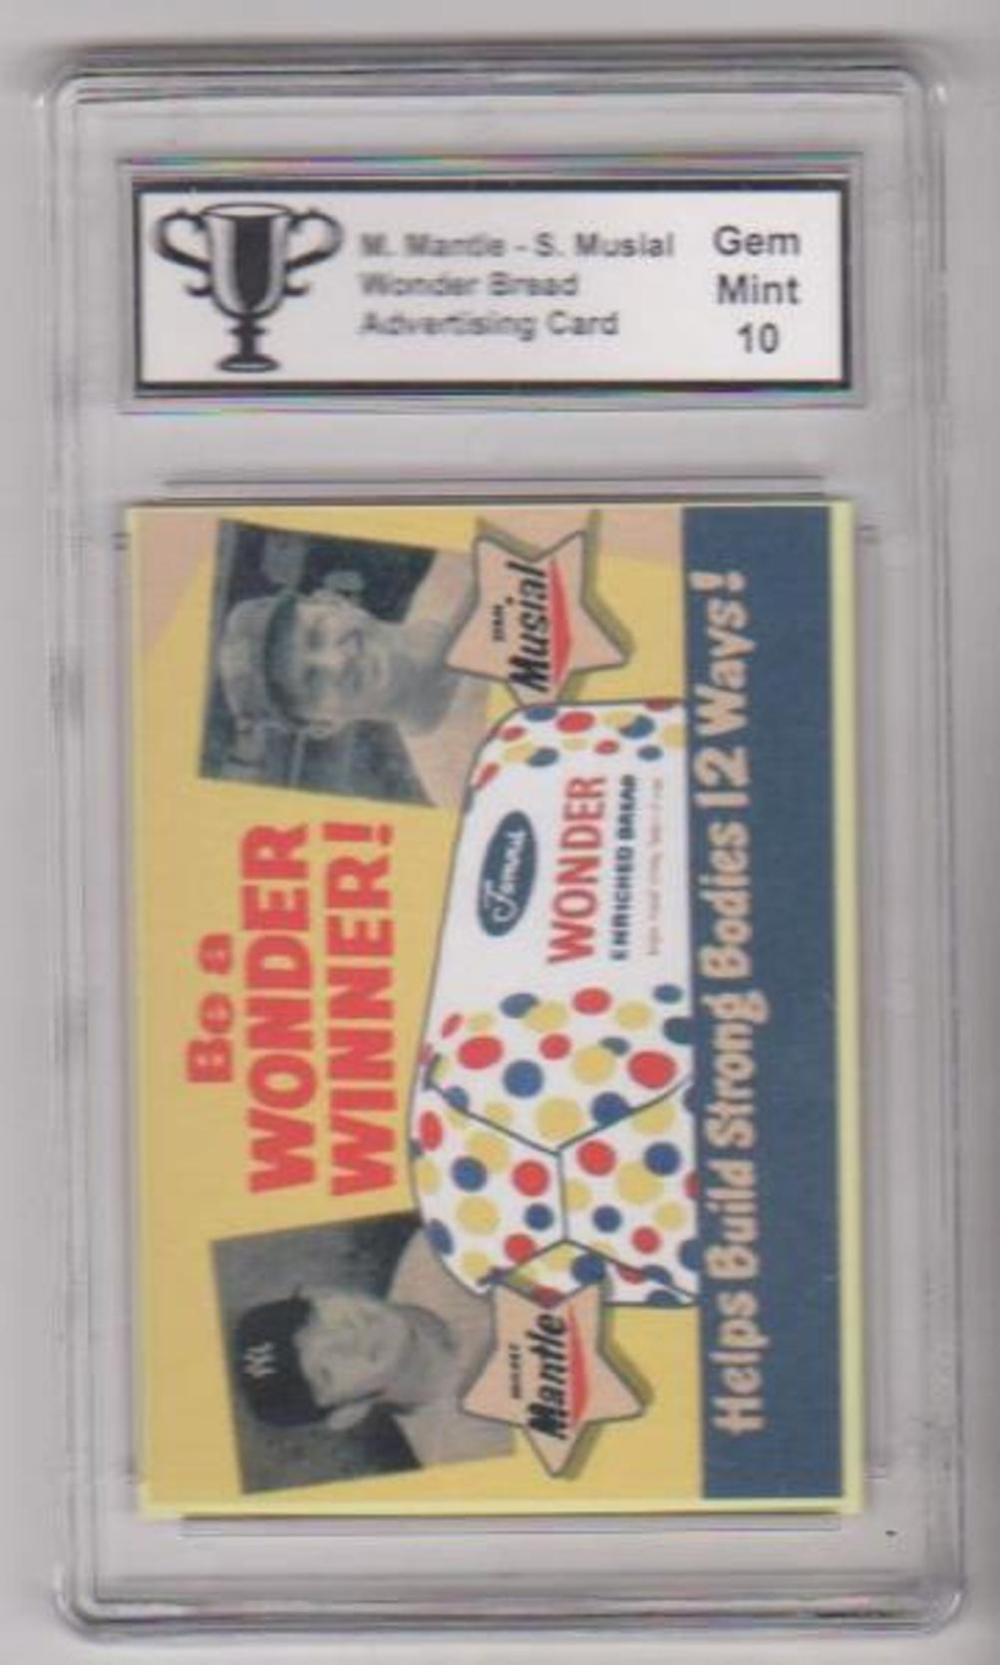 Graded Gem Mint 10 Mickey Mantle-Stan Musial Wonder Bread Advertising Card